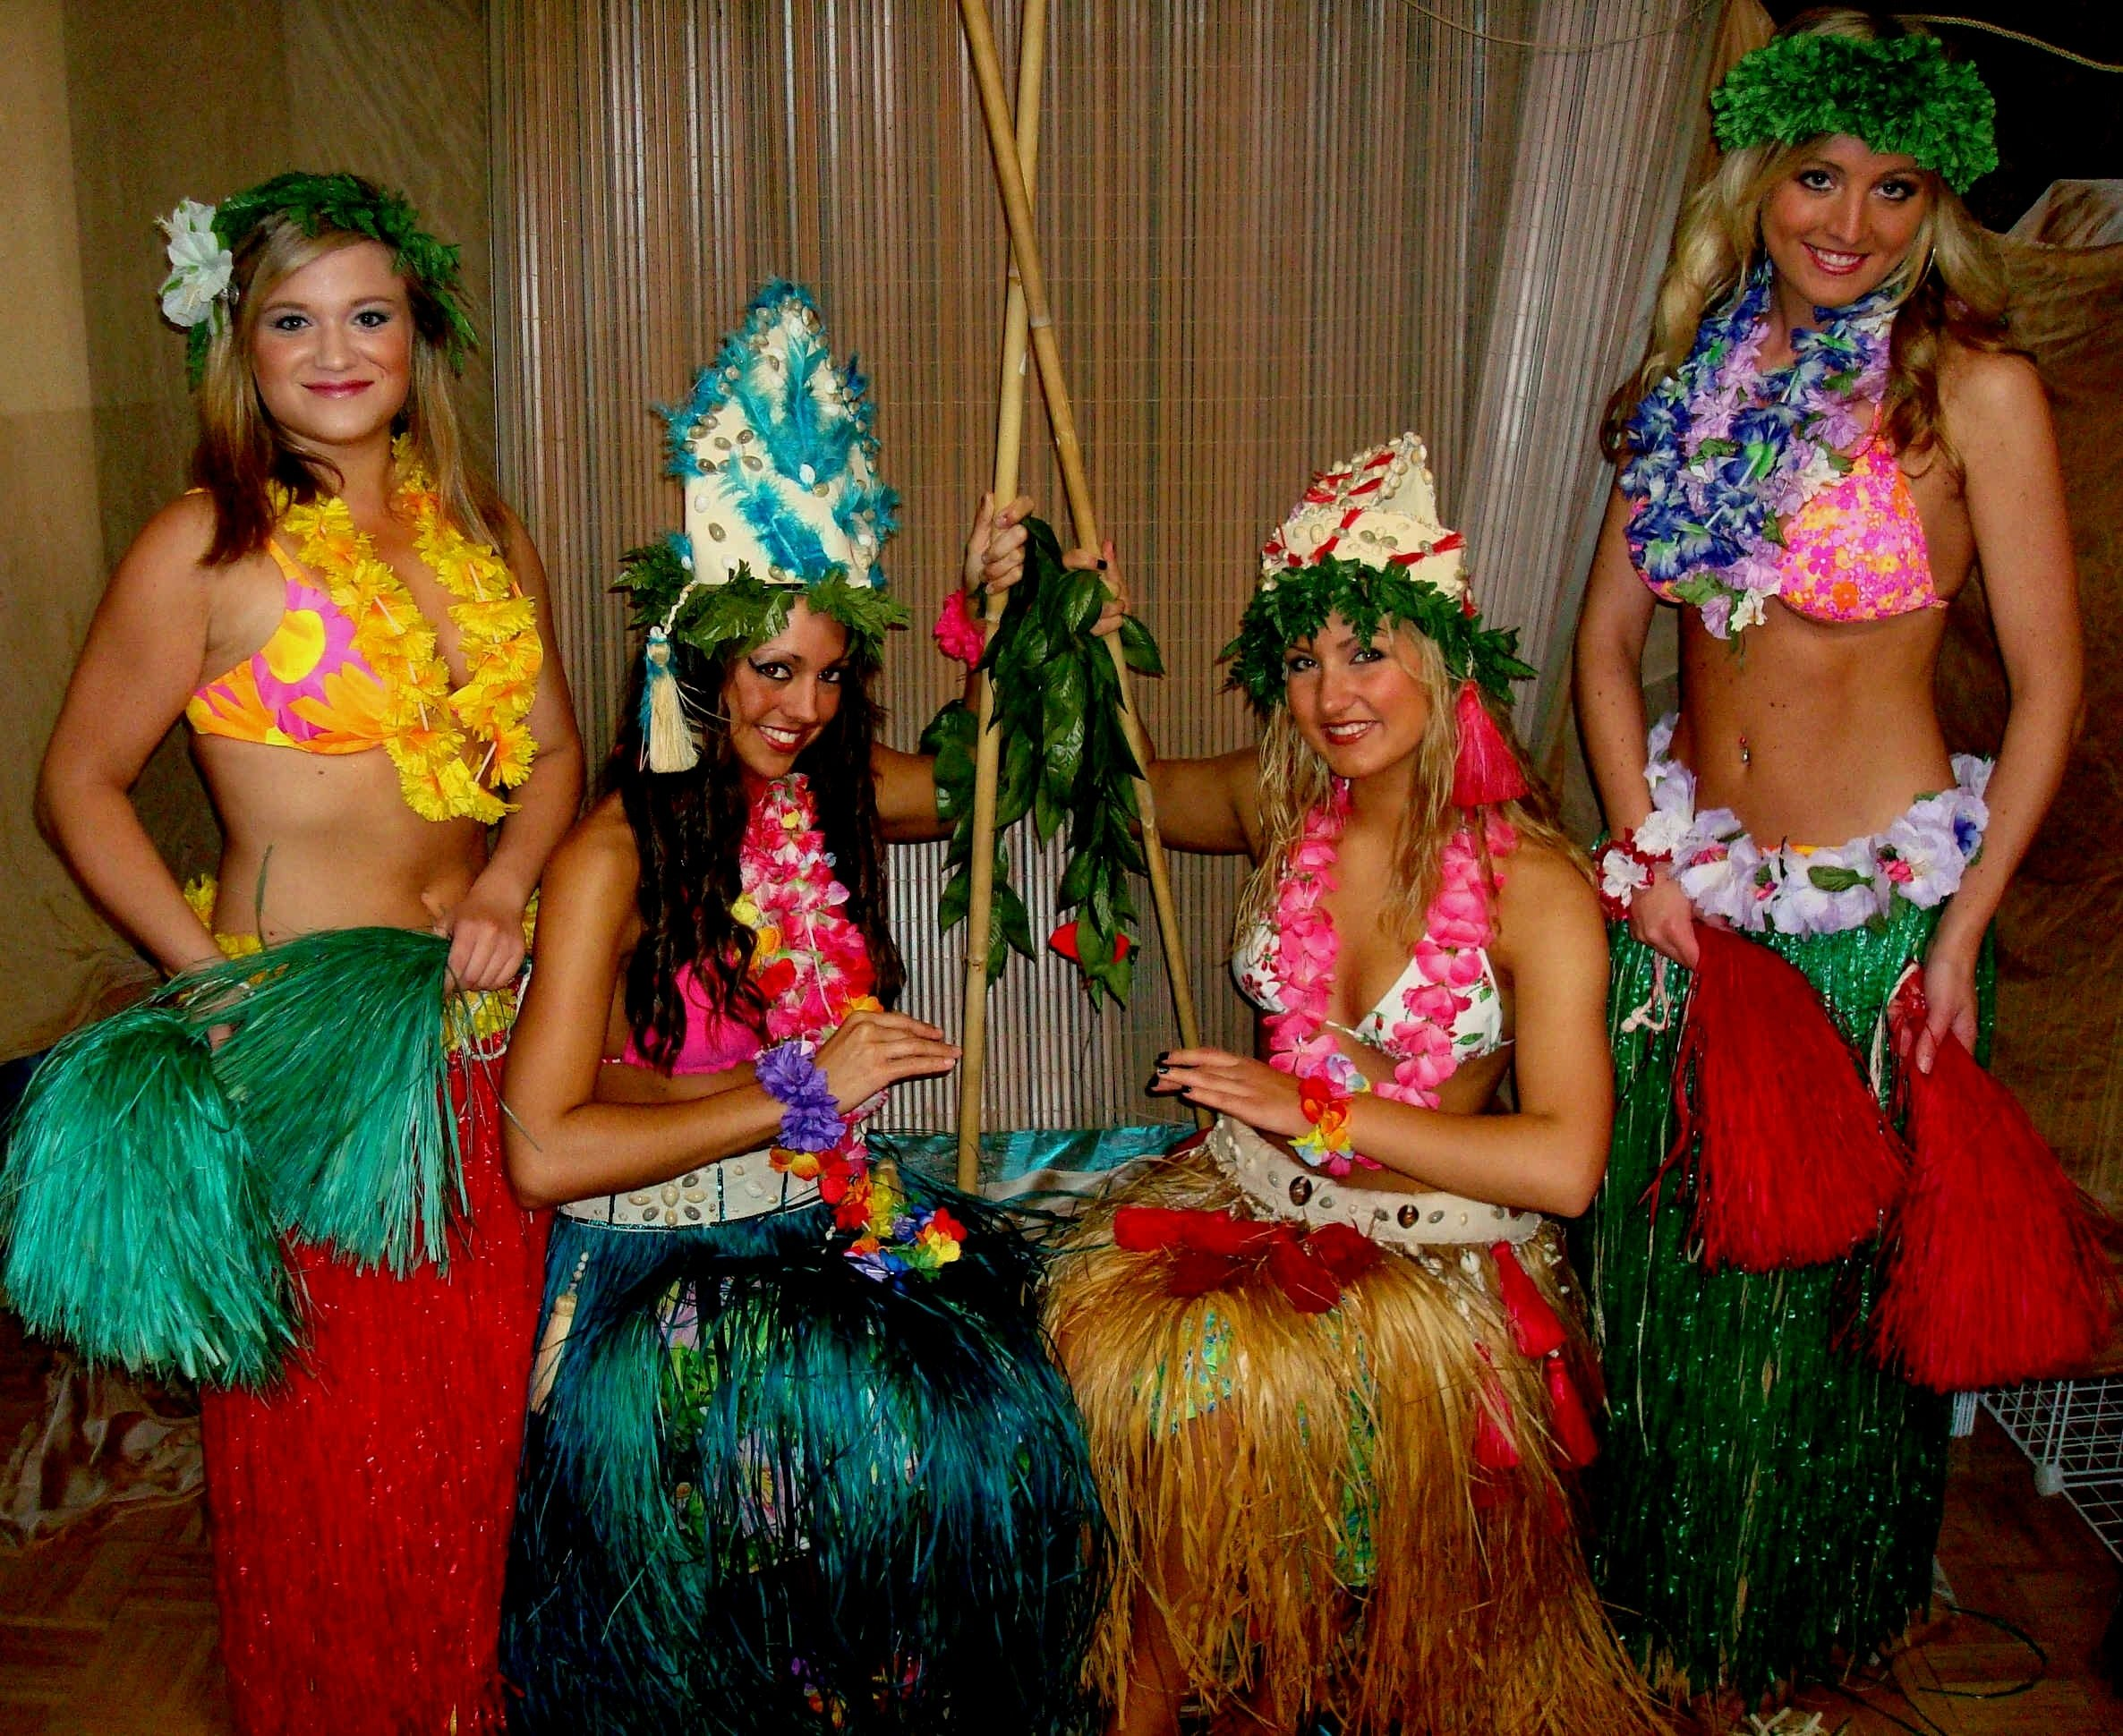 10 Amazing Themed Party Ideas For College great party themes for college decorating of party 2021